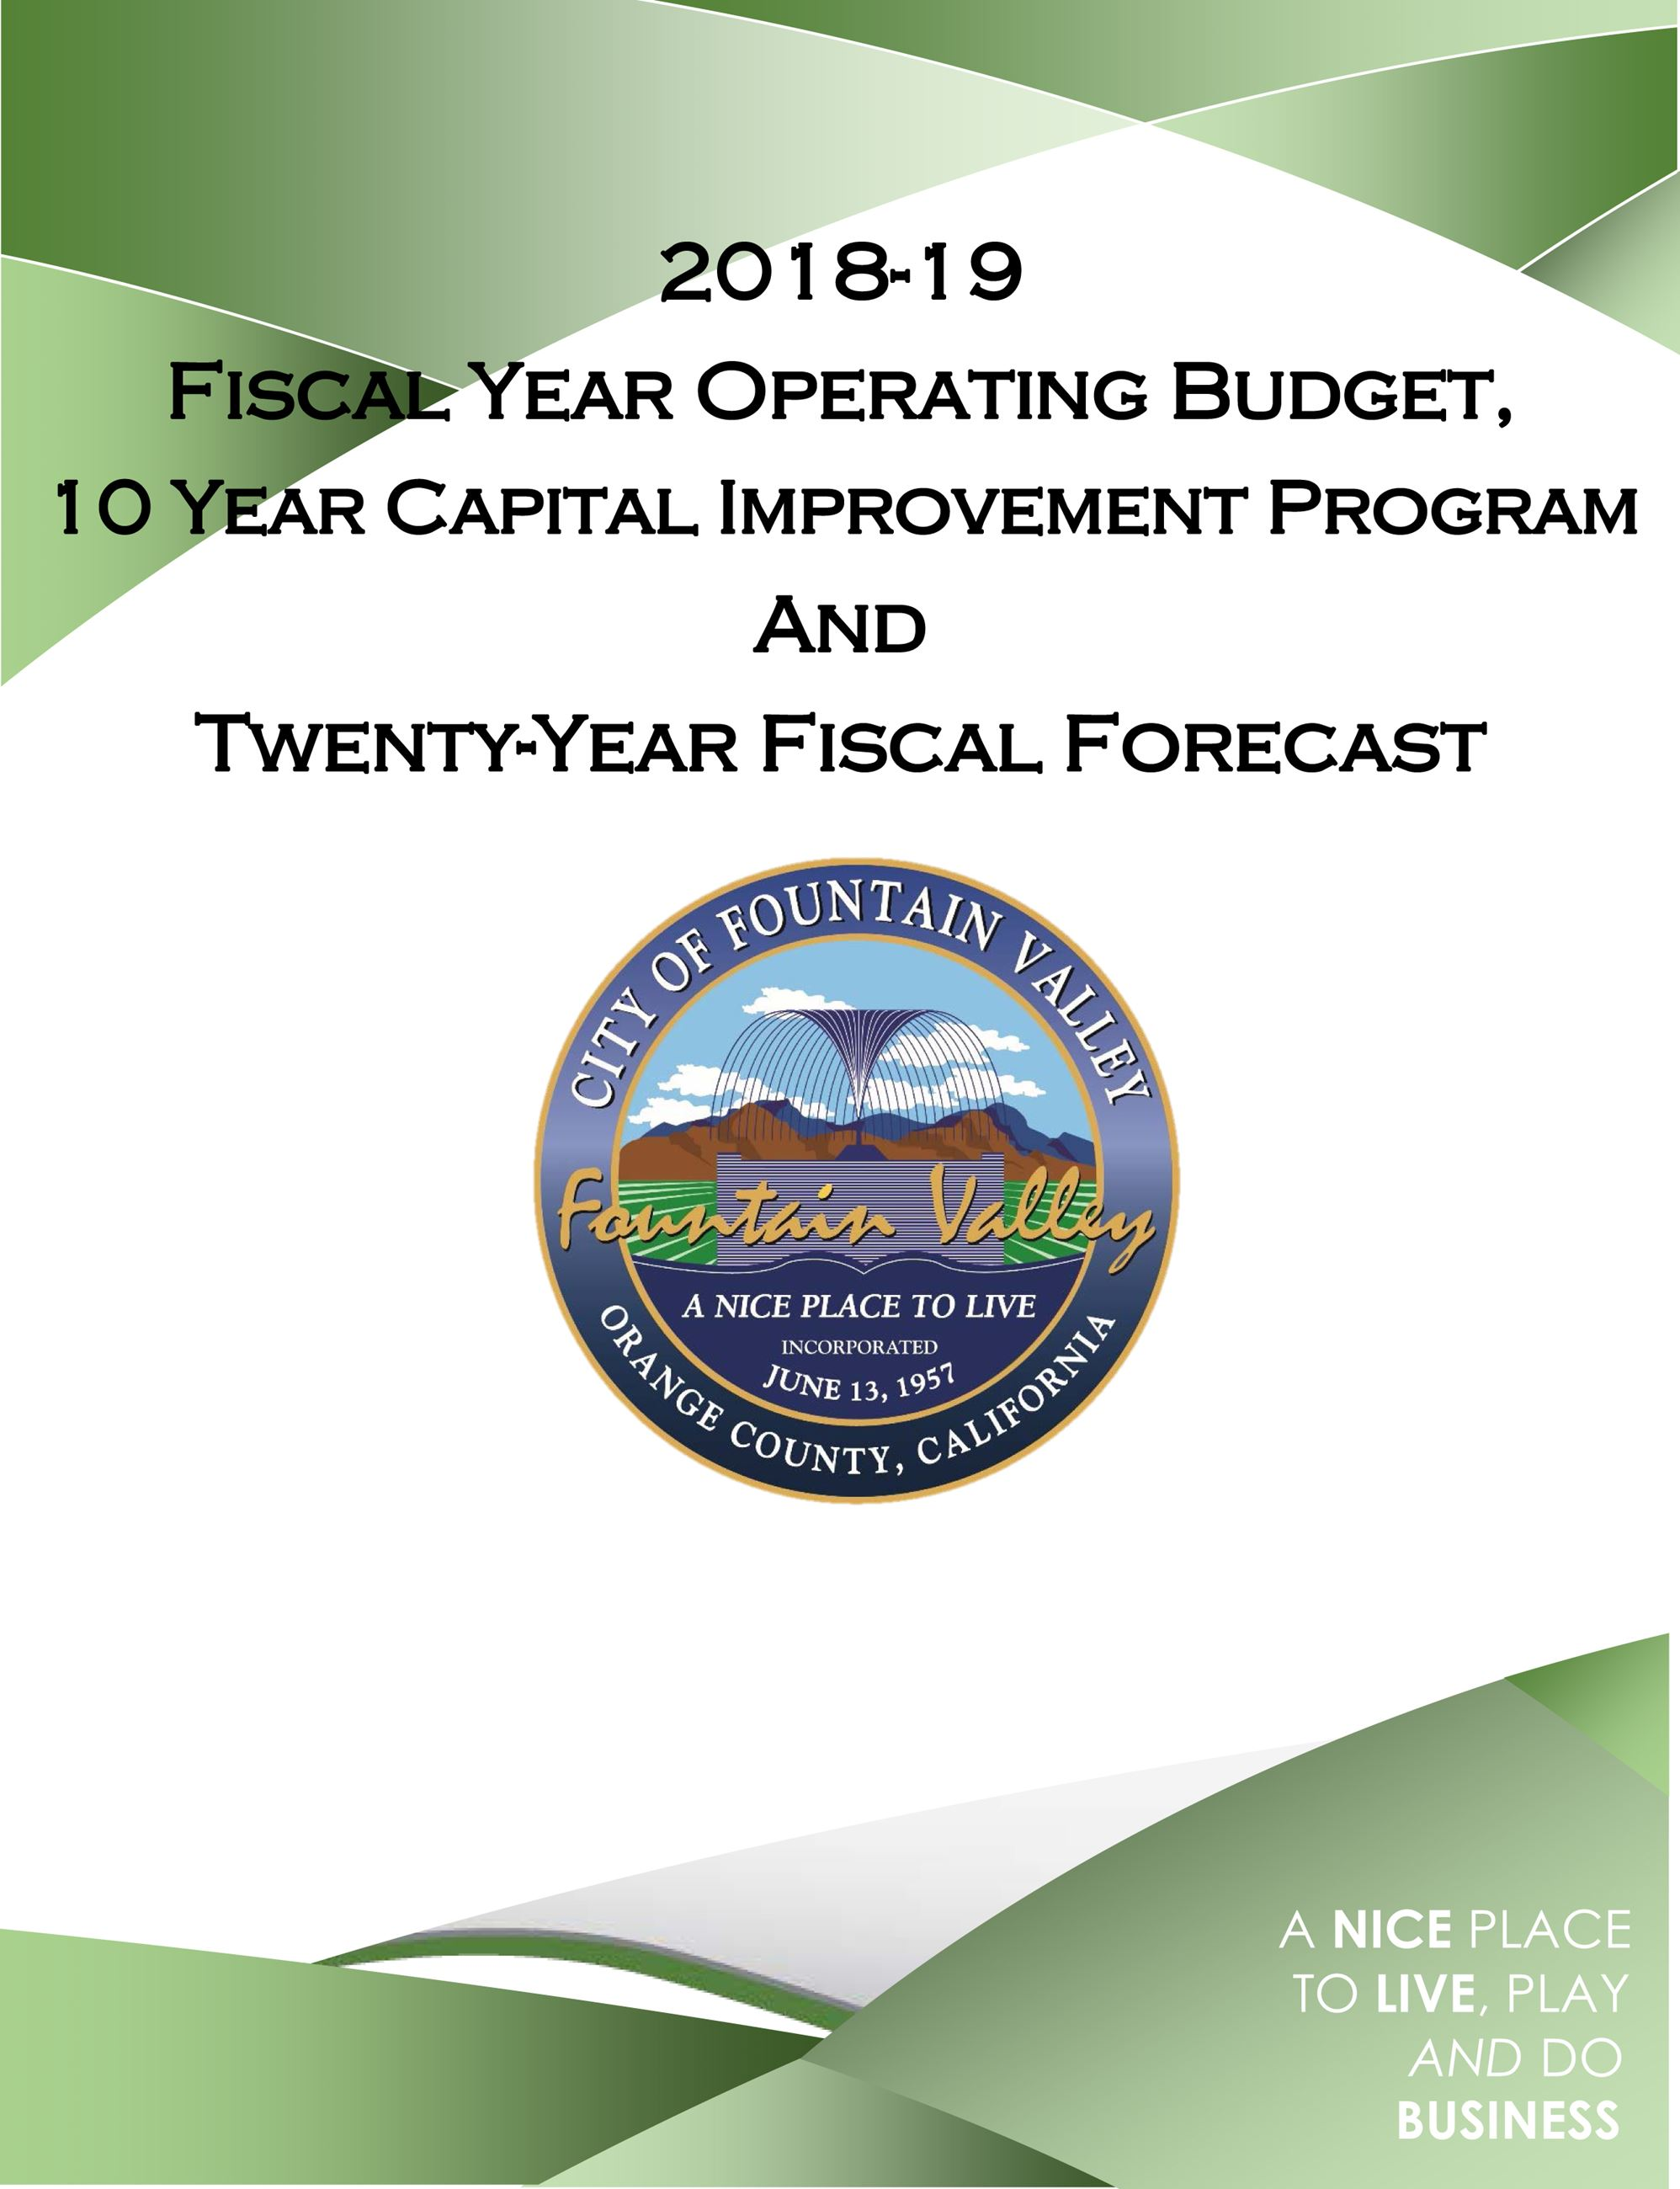 18-19 Budget Cover